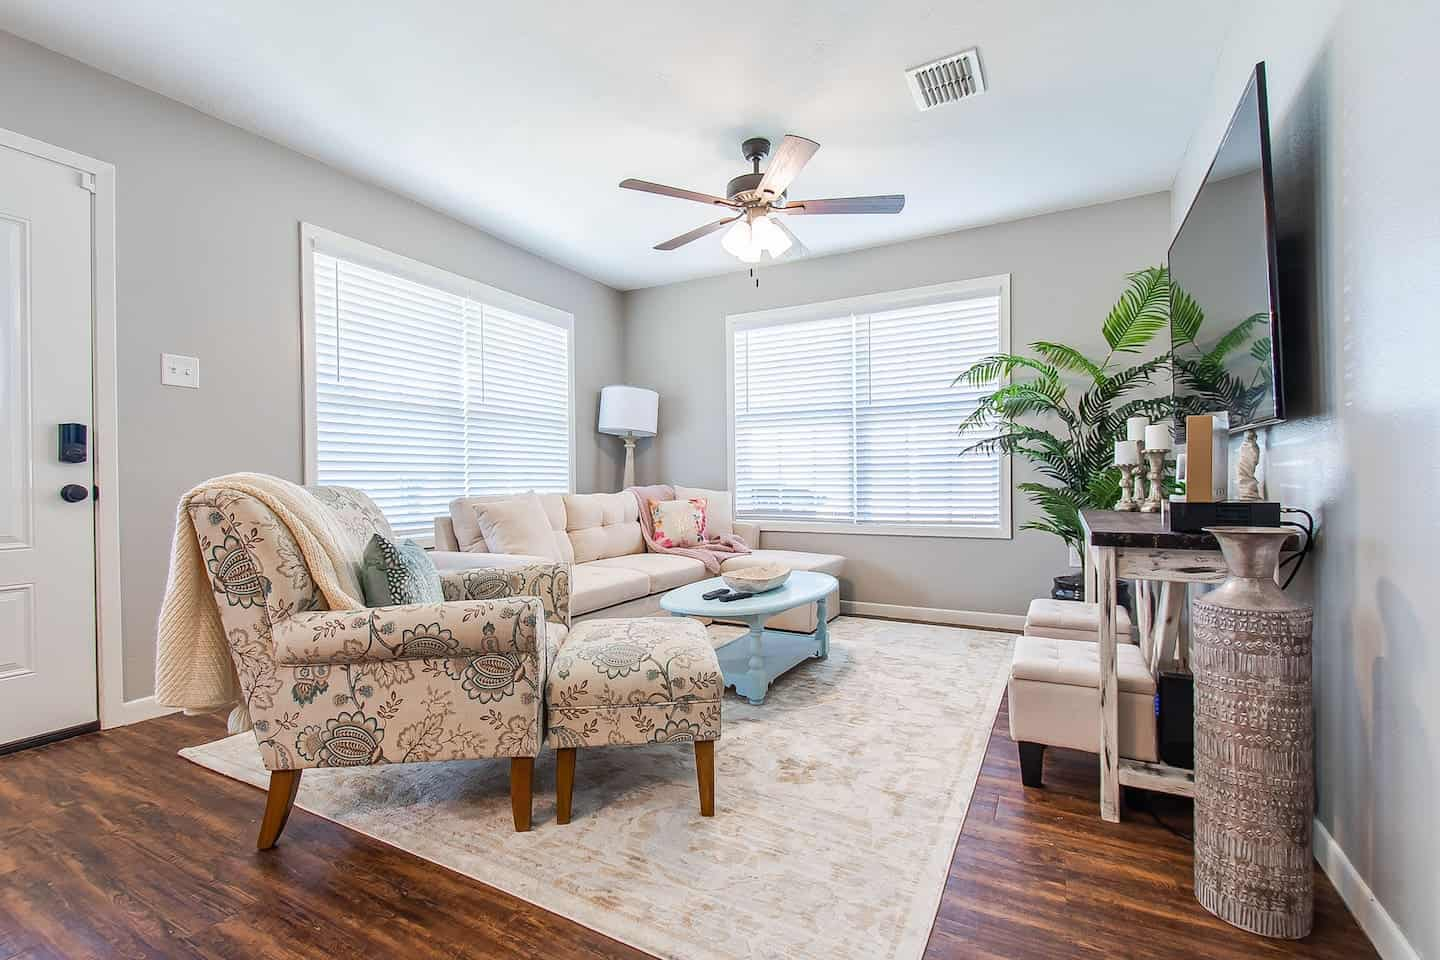 Image of Airbnb rental in College Station, TX